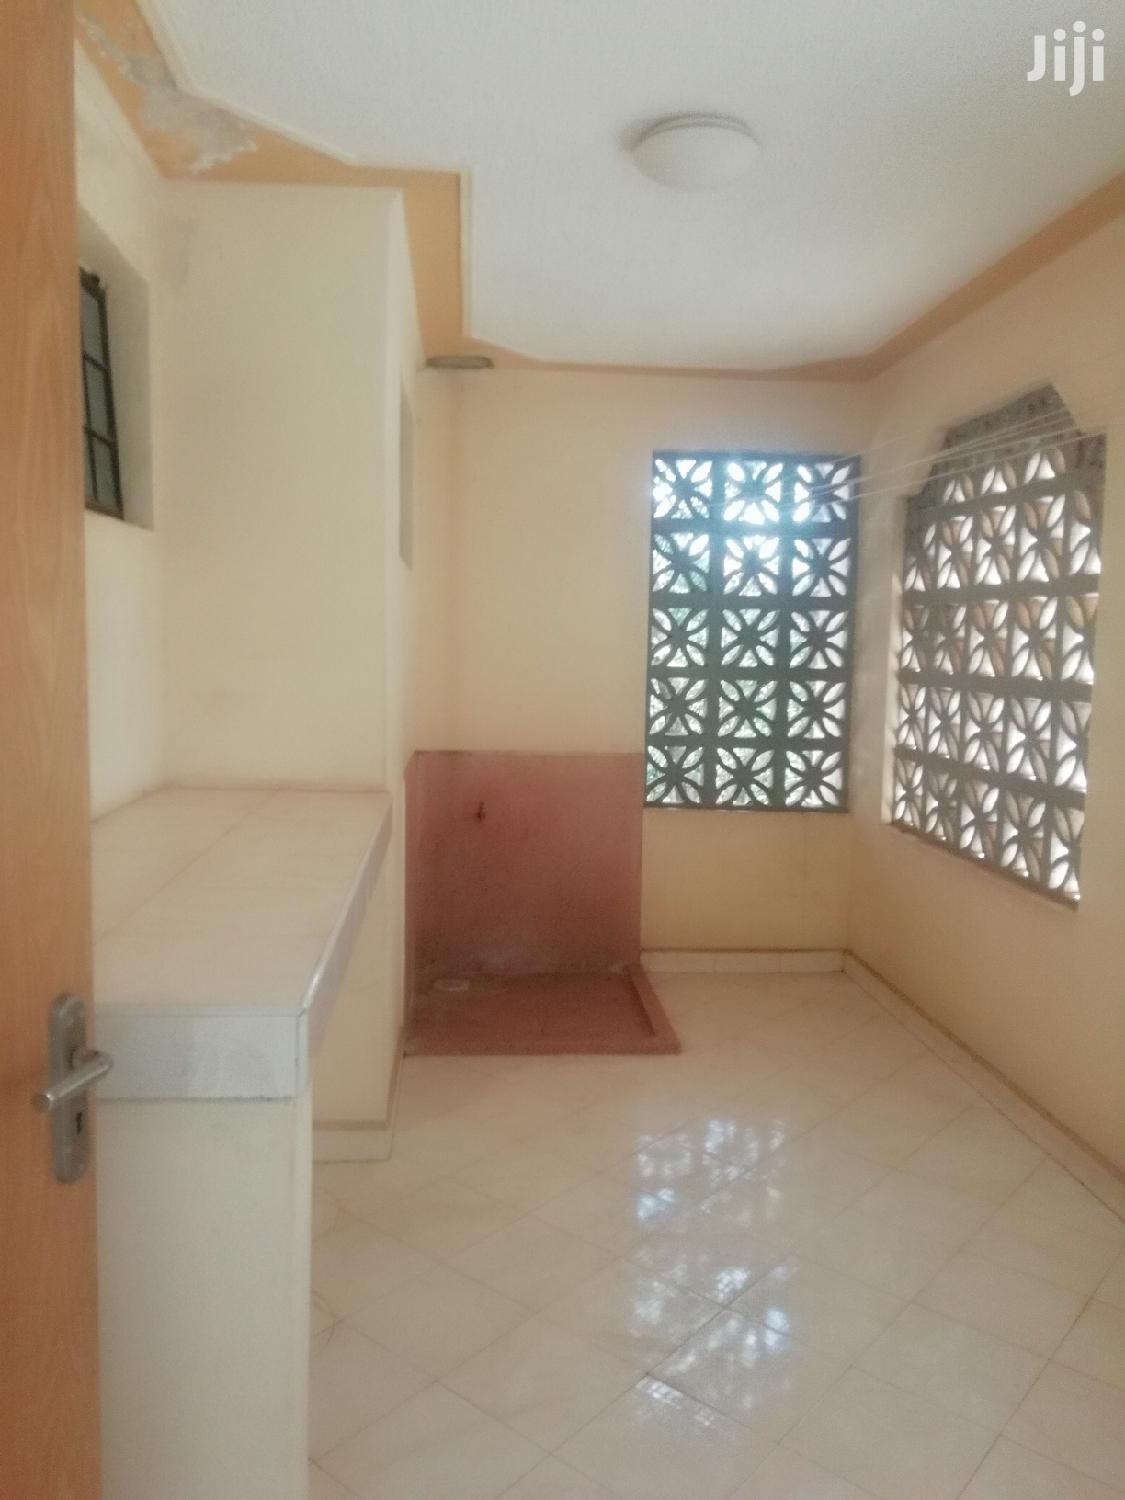 Elegant;3brs Apartment All Ensuite And Very Secure | Houses & Apartments For Rent for sale in Kileleshwa, Nairobi, Kenya